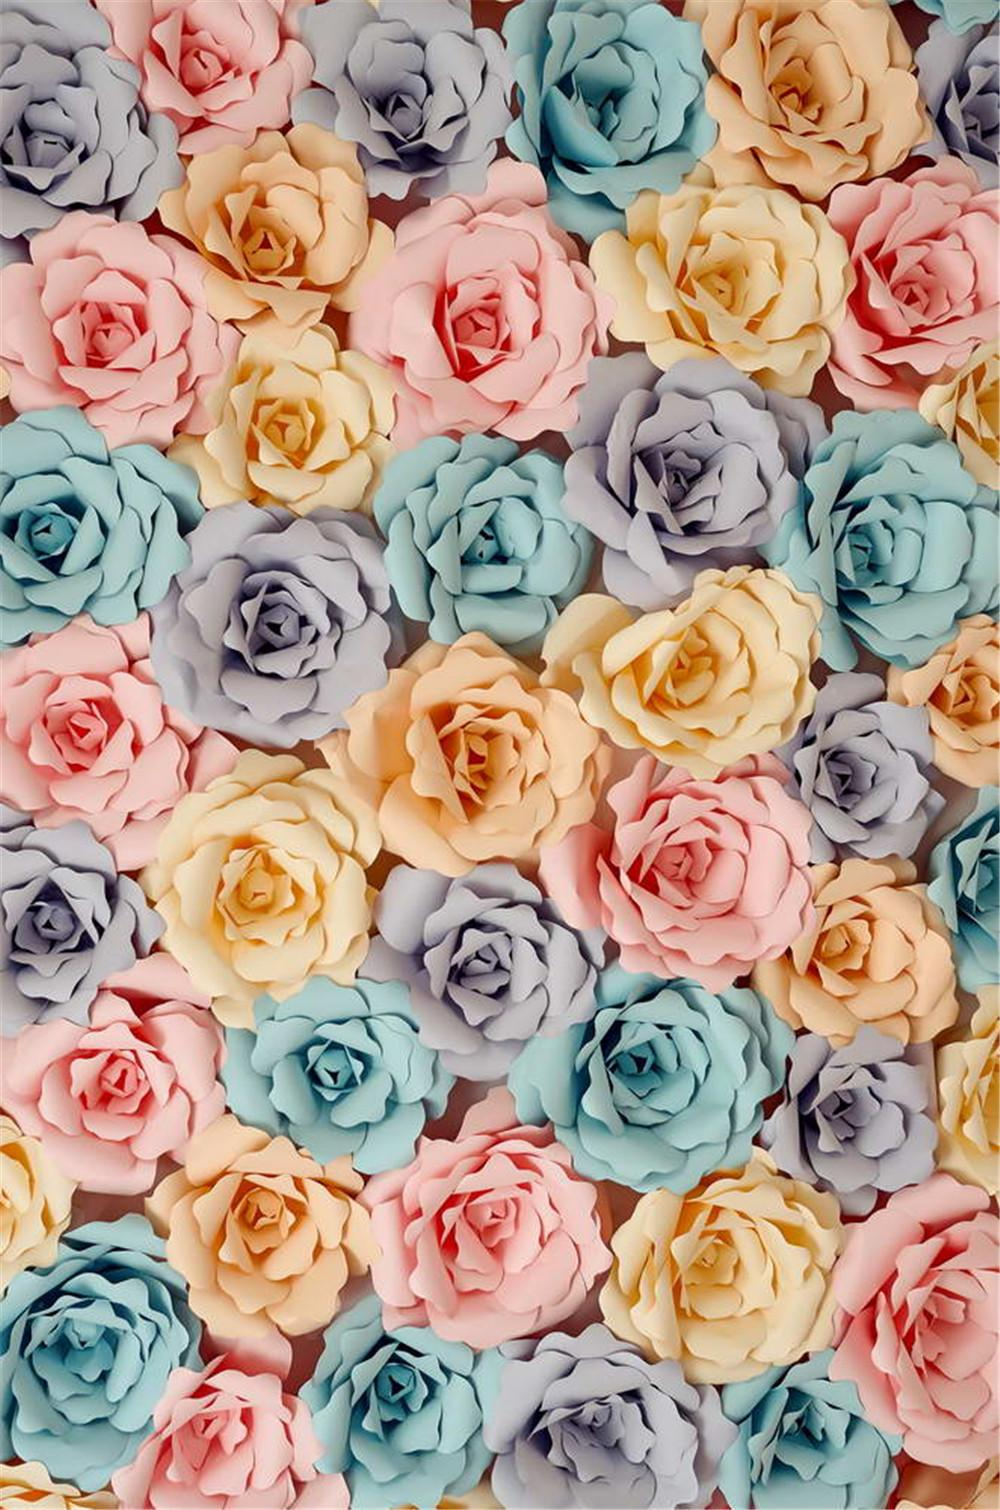 2018 Digital Printing 3d Paper Flower Backdrop For Photography Blue